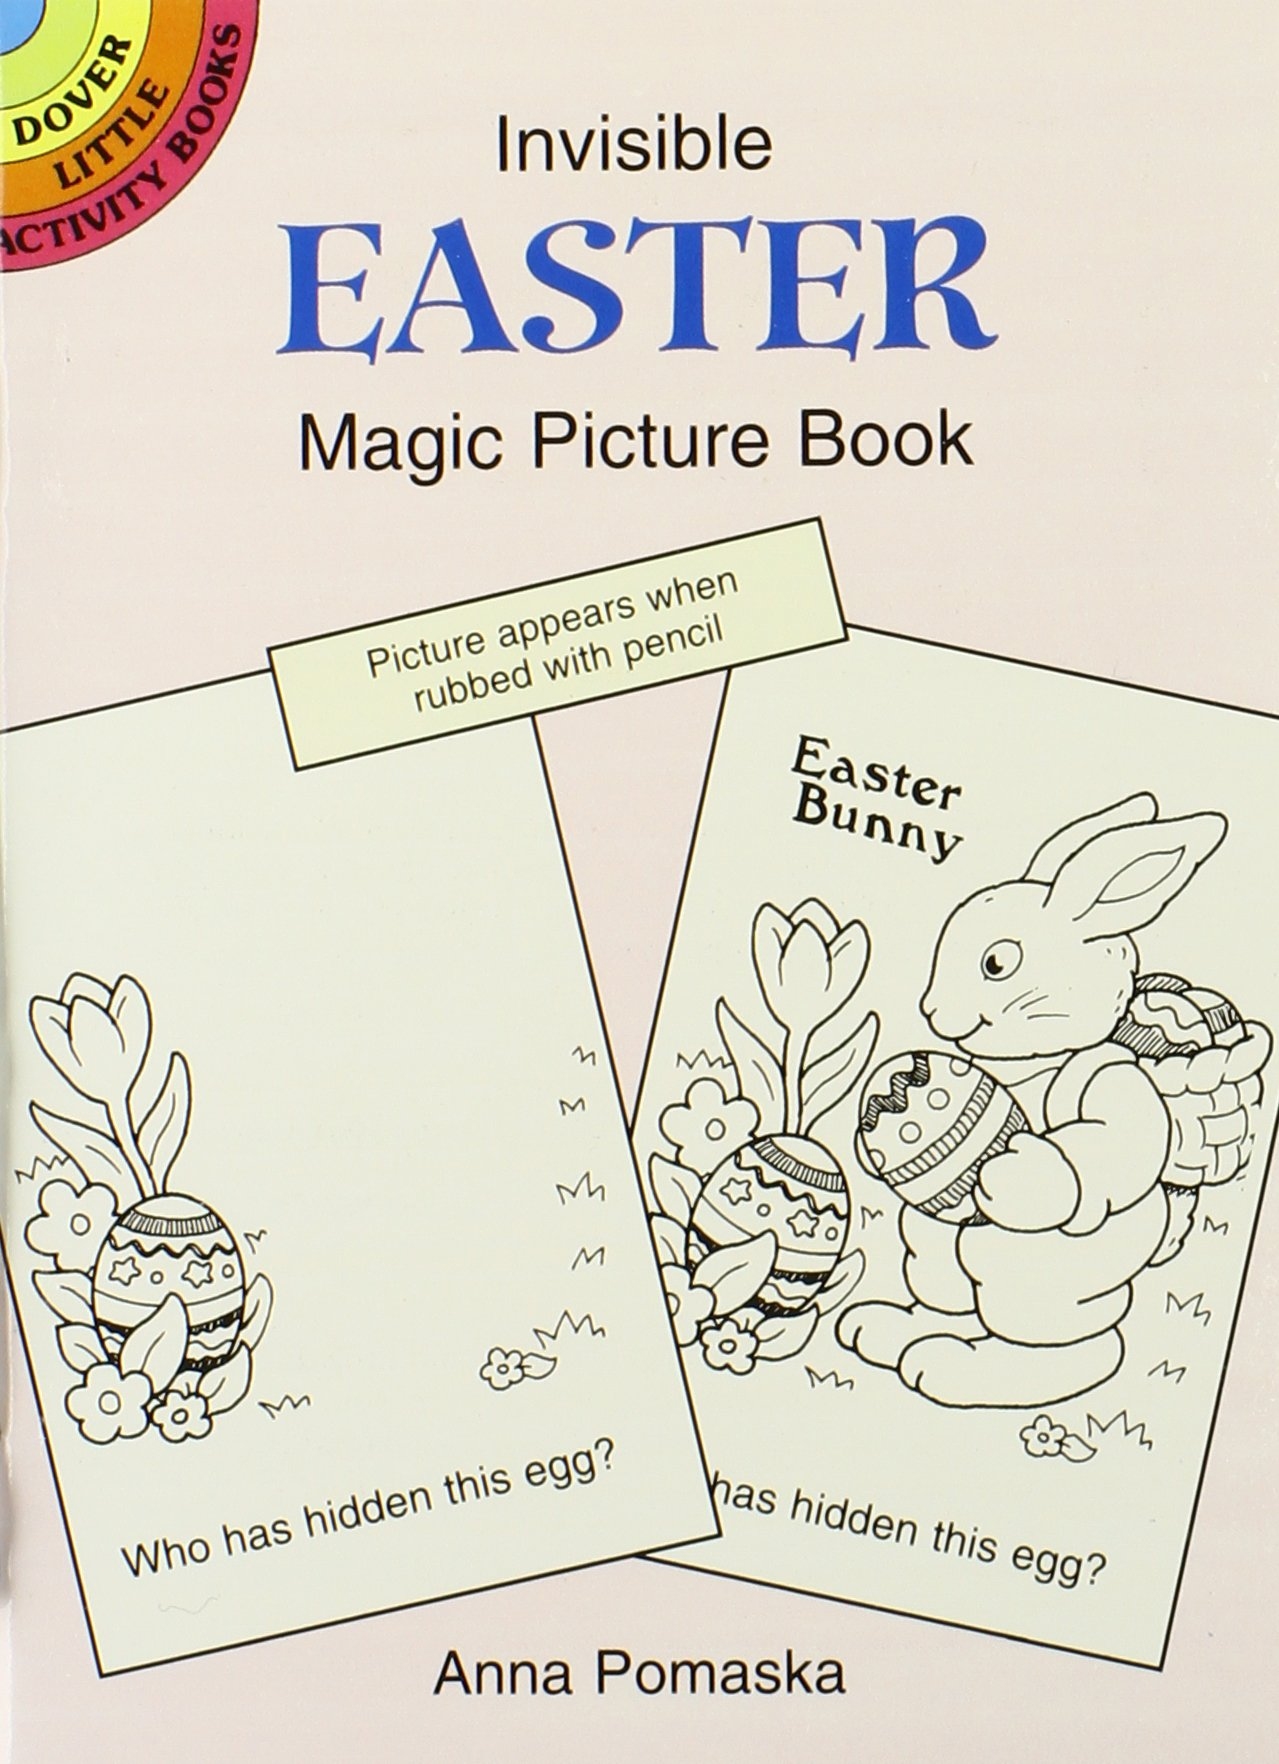 10 Easter Fun Books: Stickers, Stencils, Tattoos and More (Dover Little Activity Books) by Dover Publications (Image #5)